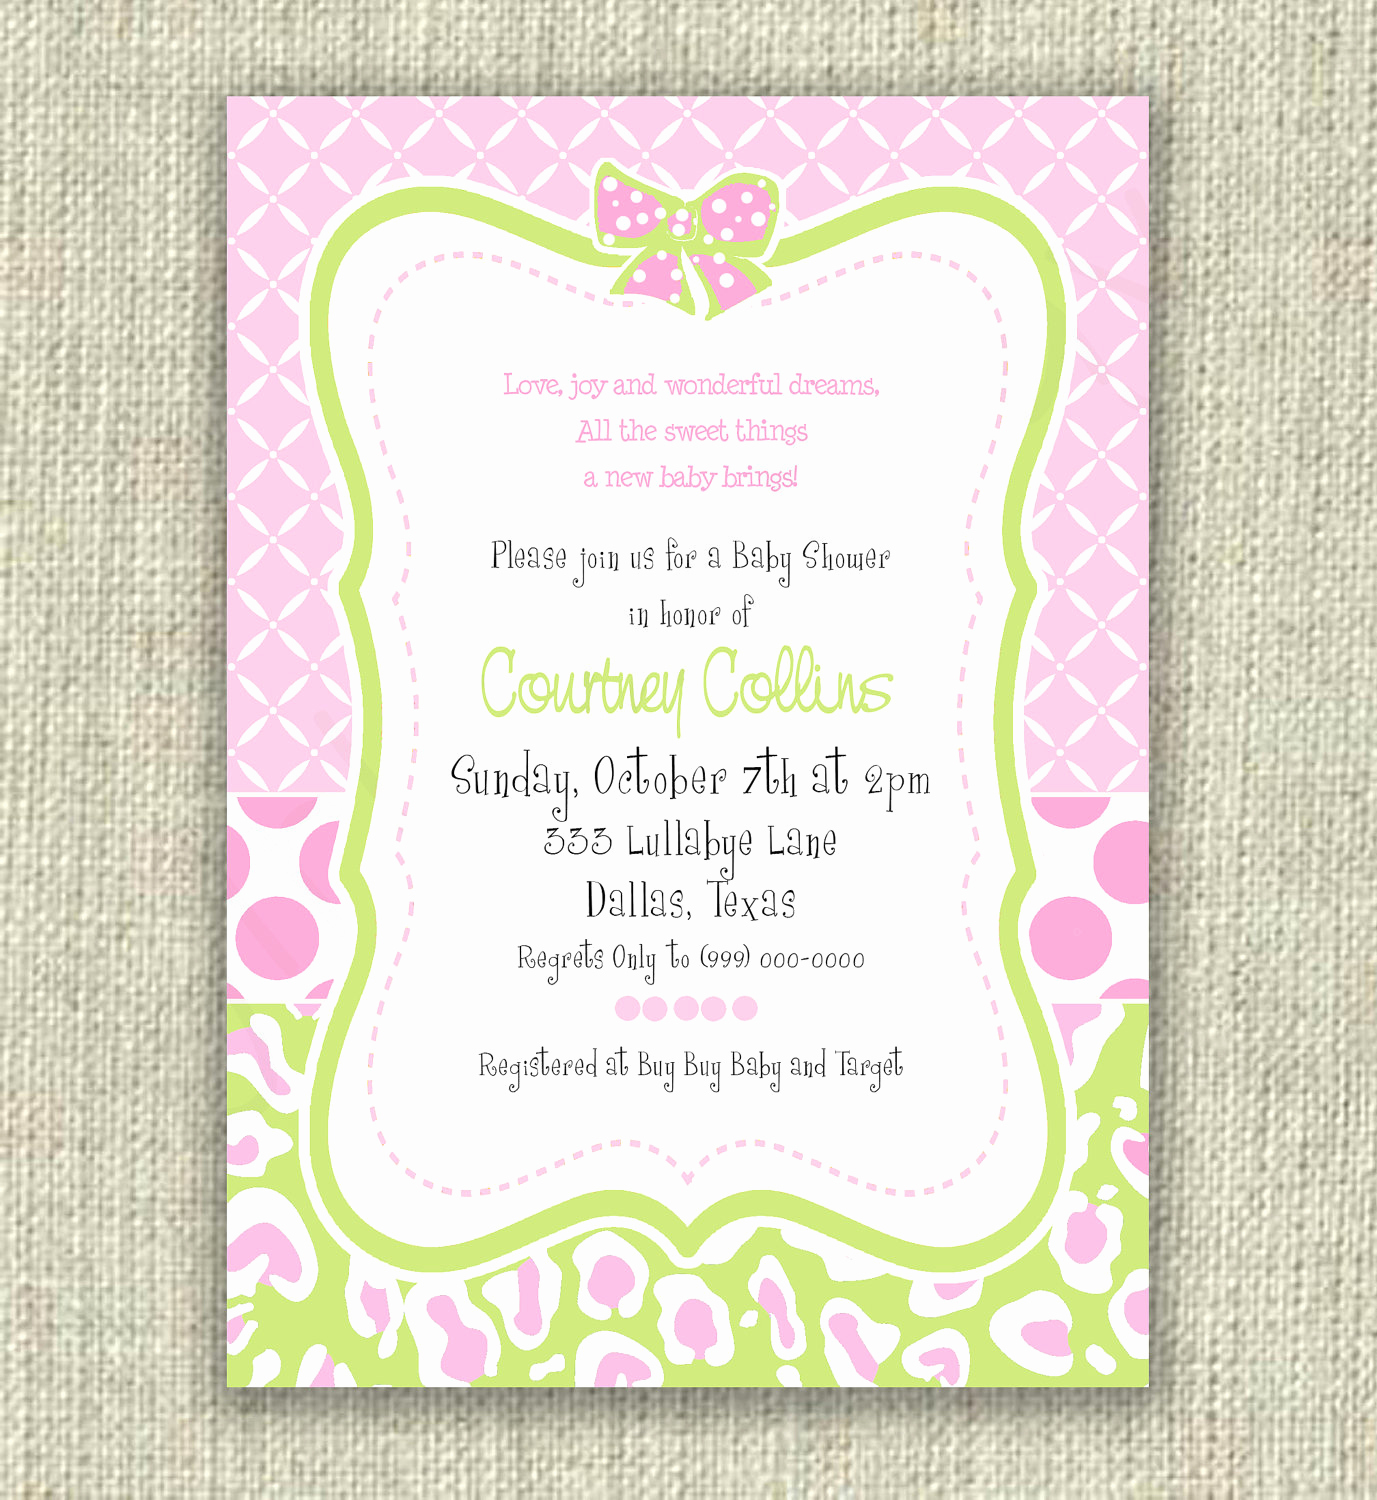 Display Baby Shower Invitation Wording Awesome Couples Baby Shower Open House Invitation Wording • Baby